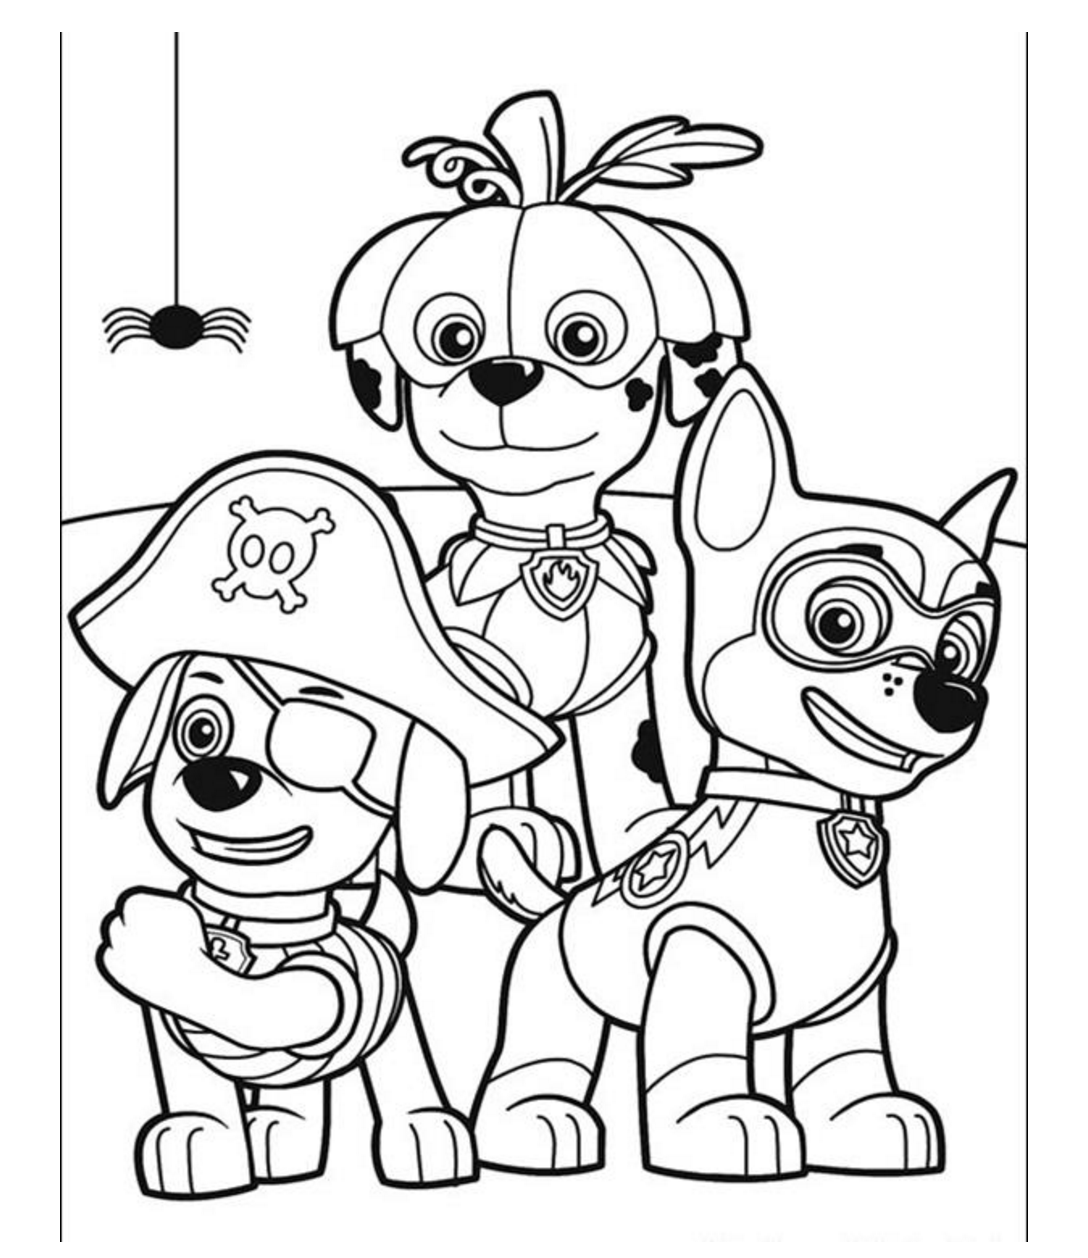 PAW Patrol on Halloween Coloring Pages | prente | Pinterest